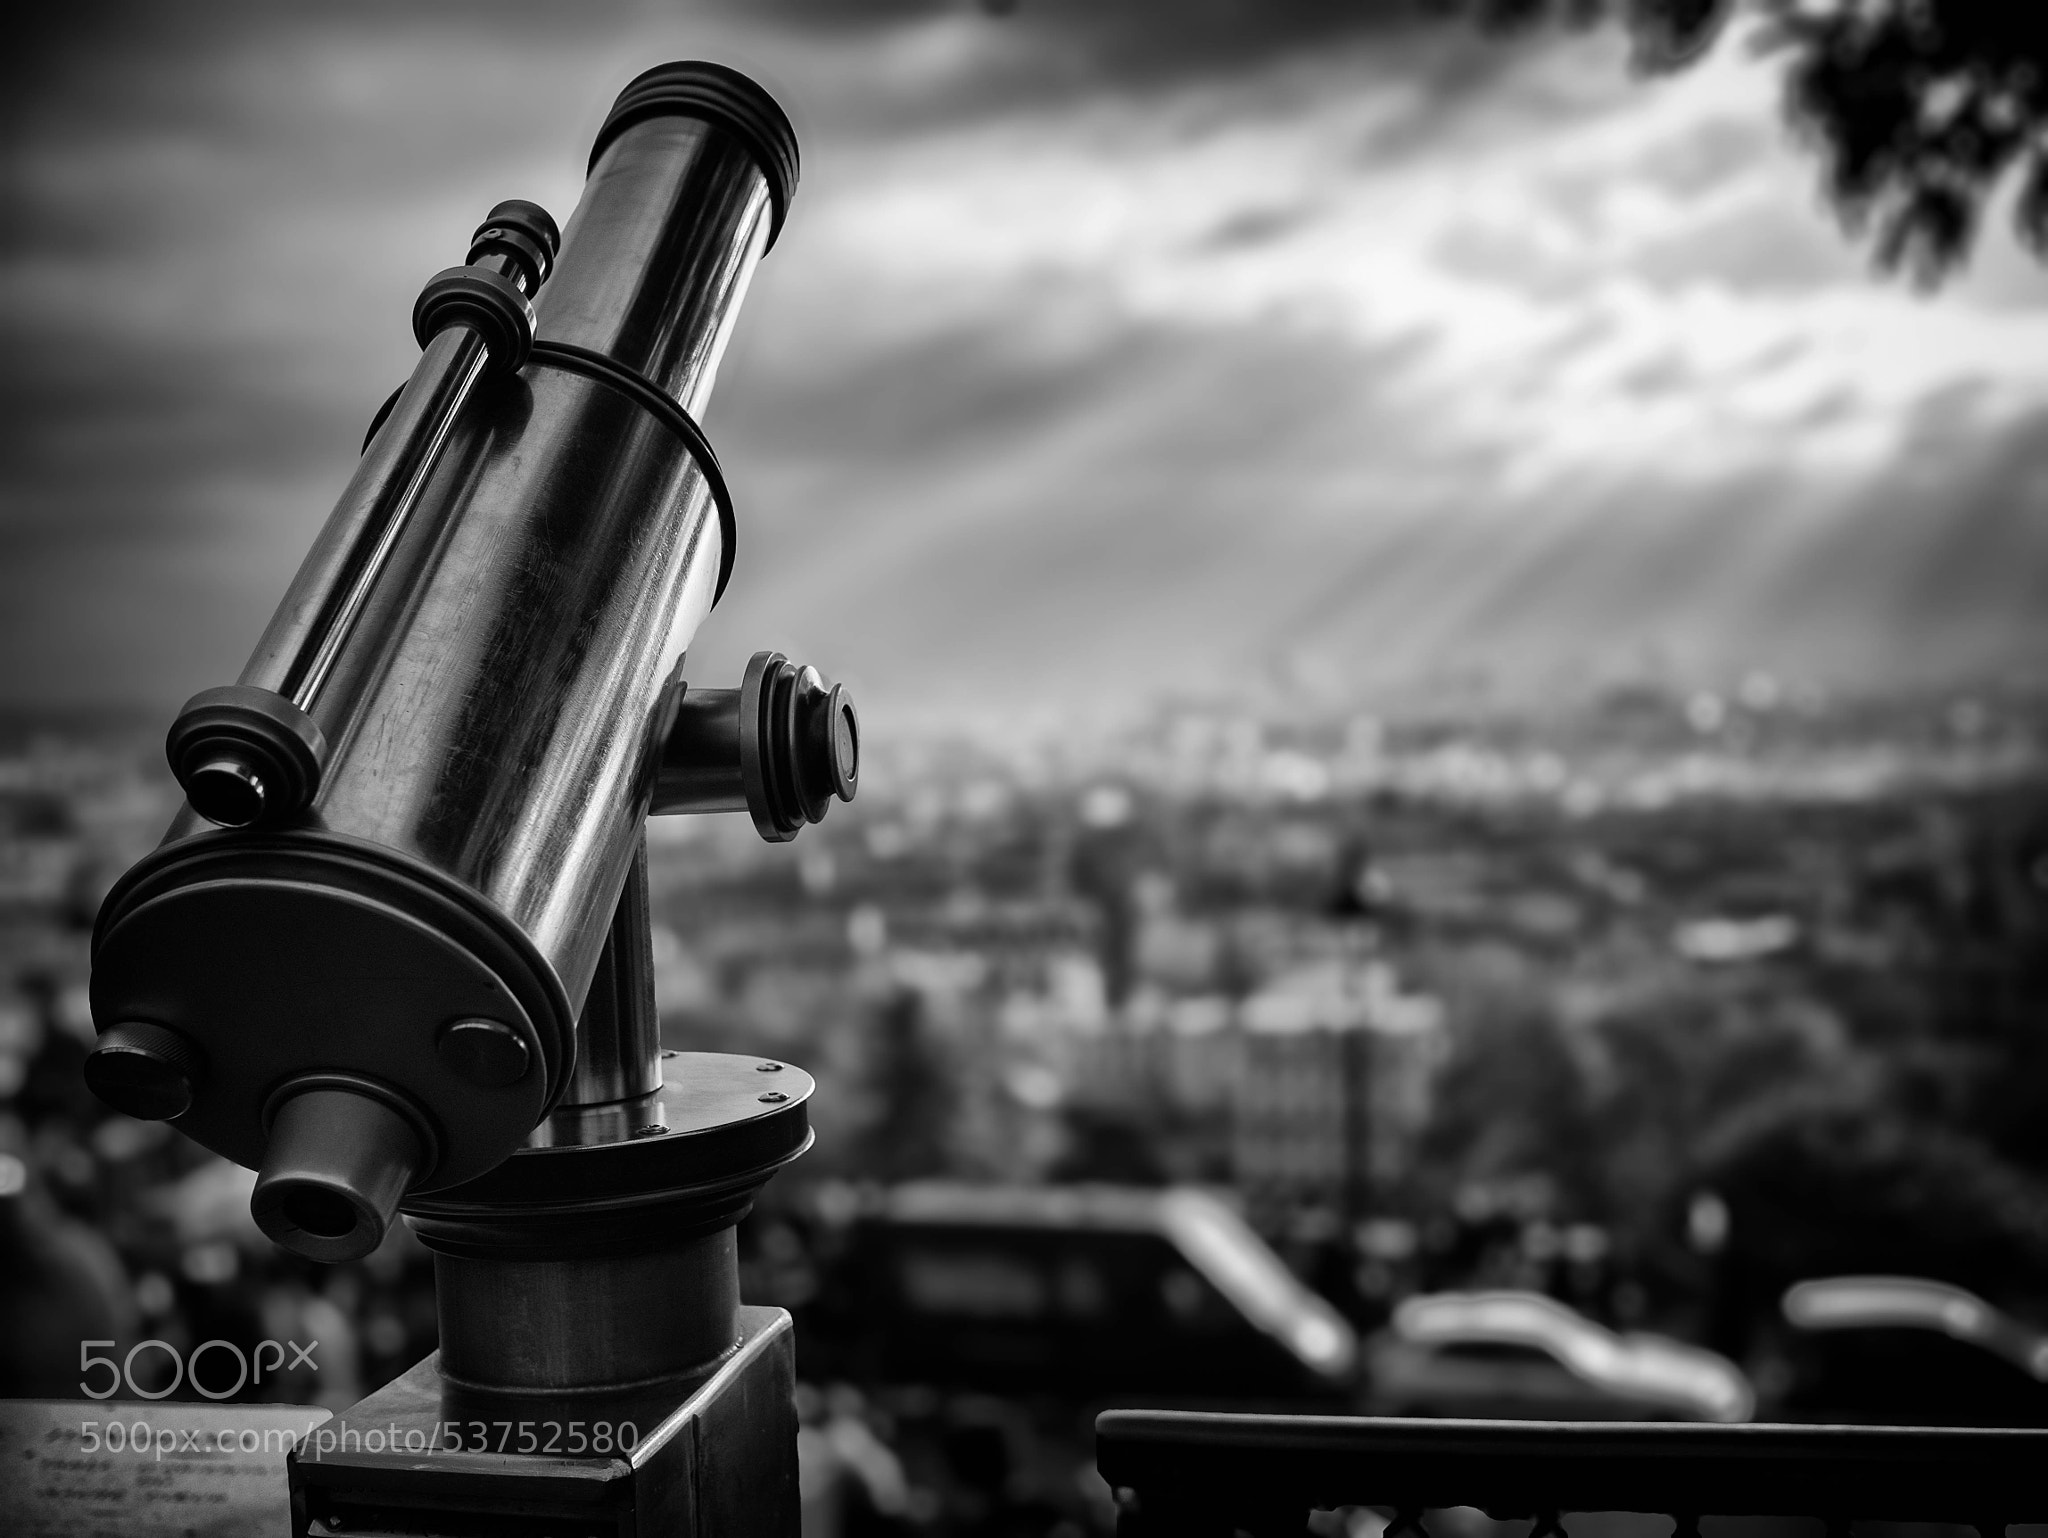 Photograph Aim for the stars by skamelone on 500px